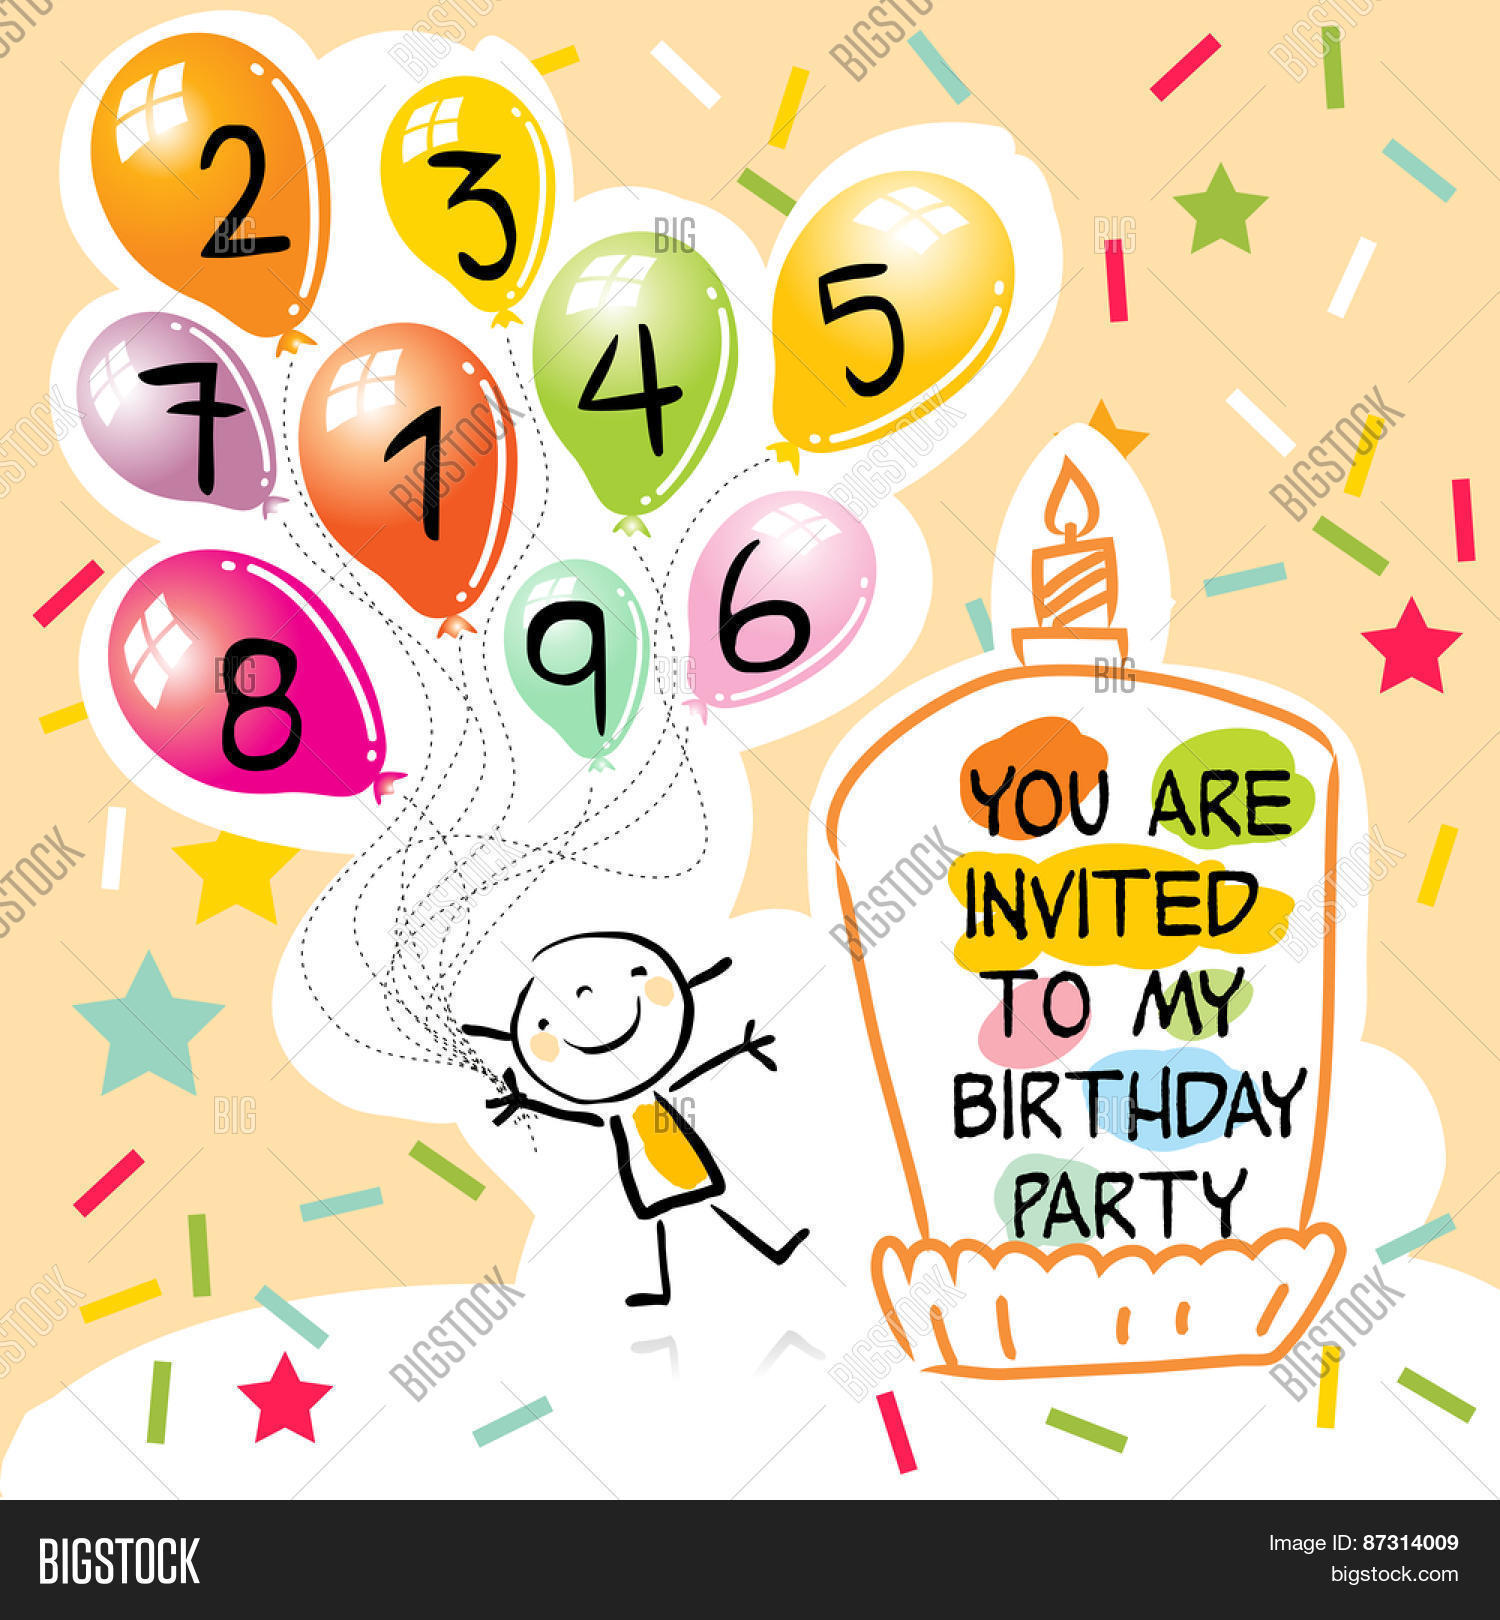 my birthday party drawing for kids ; 87314009